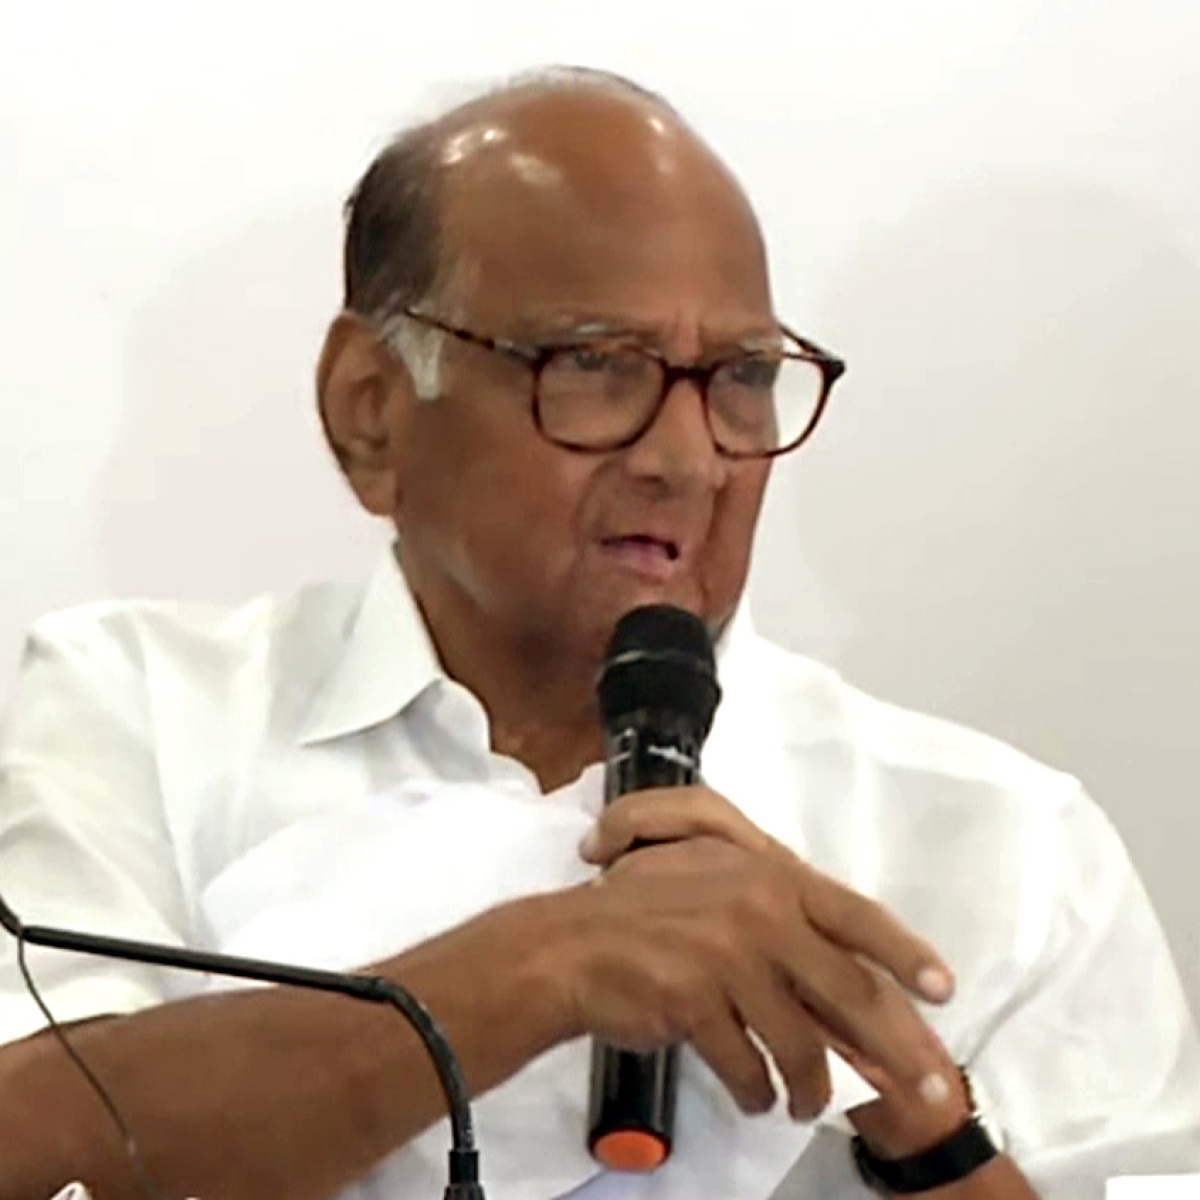 'Need patience, understanding and proper vigilance', appeals Sharad Pawar as confirmed coronavirus cases cross 400